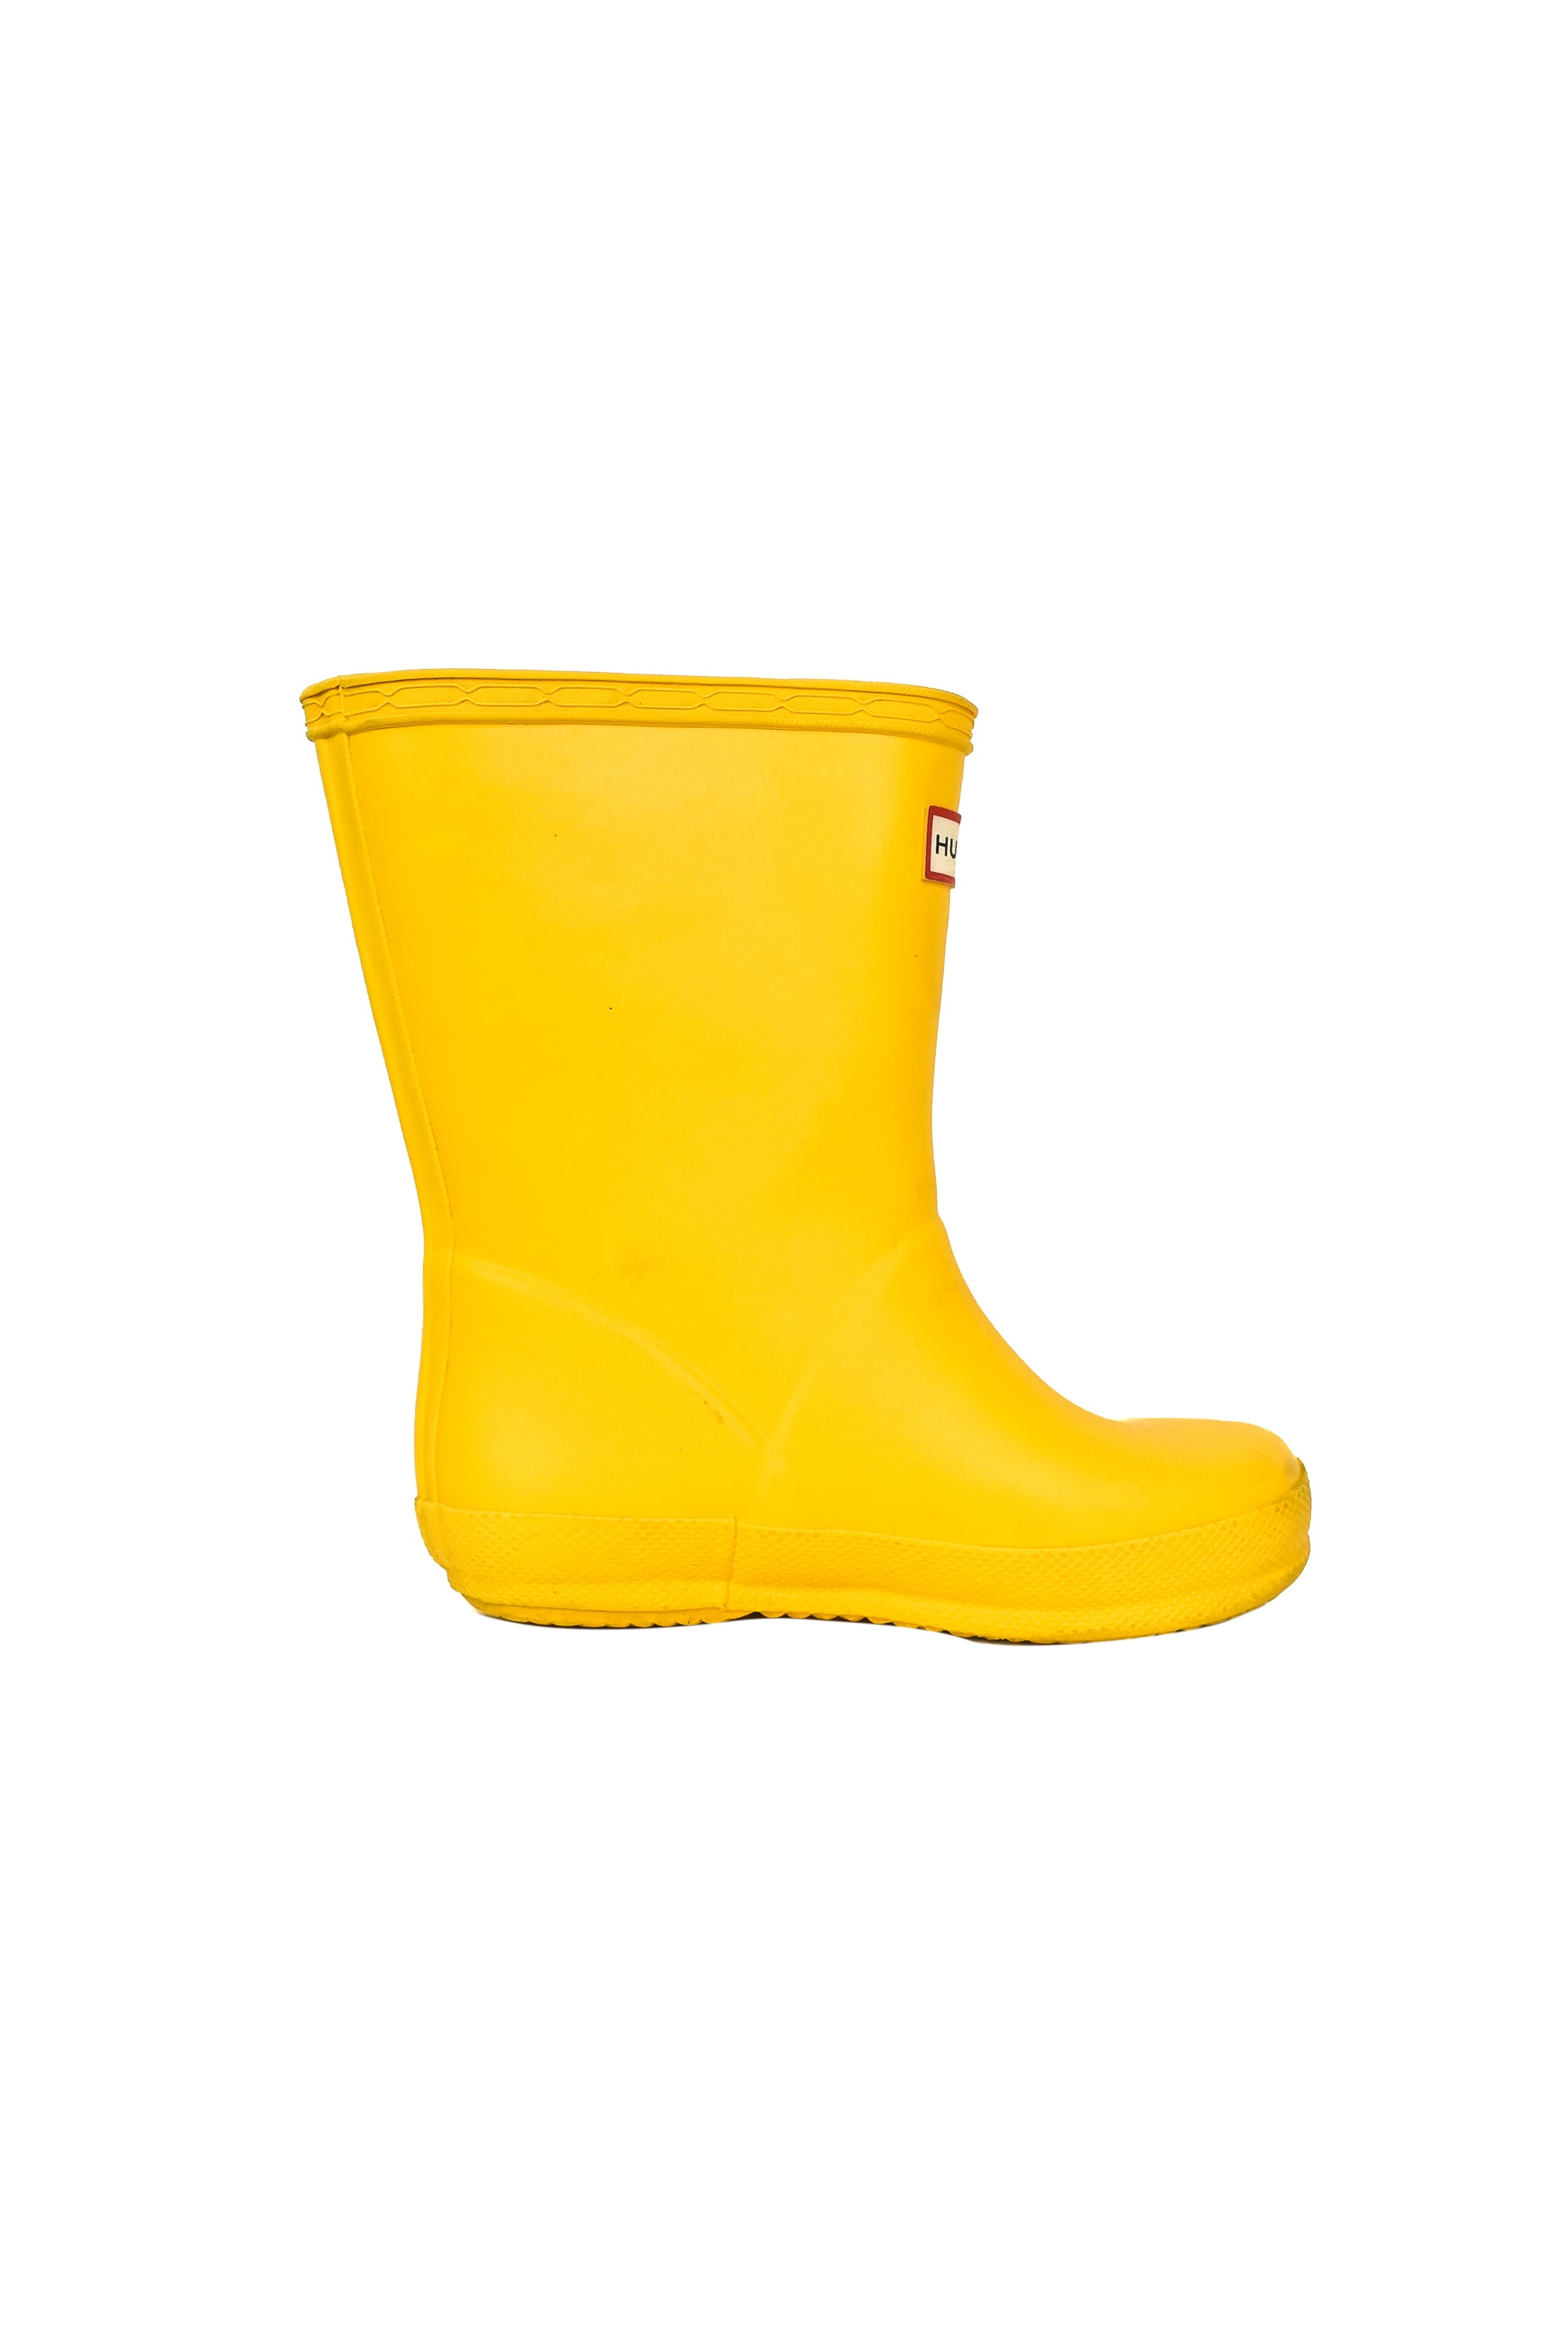 10037890 Hunter Kids~Rain Boots 3T (EU 25) at Retykle